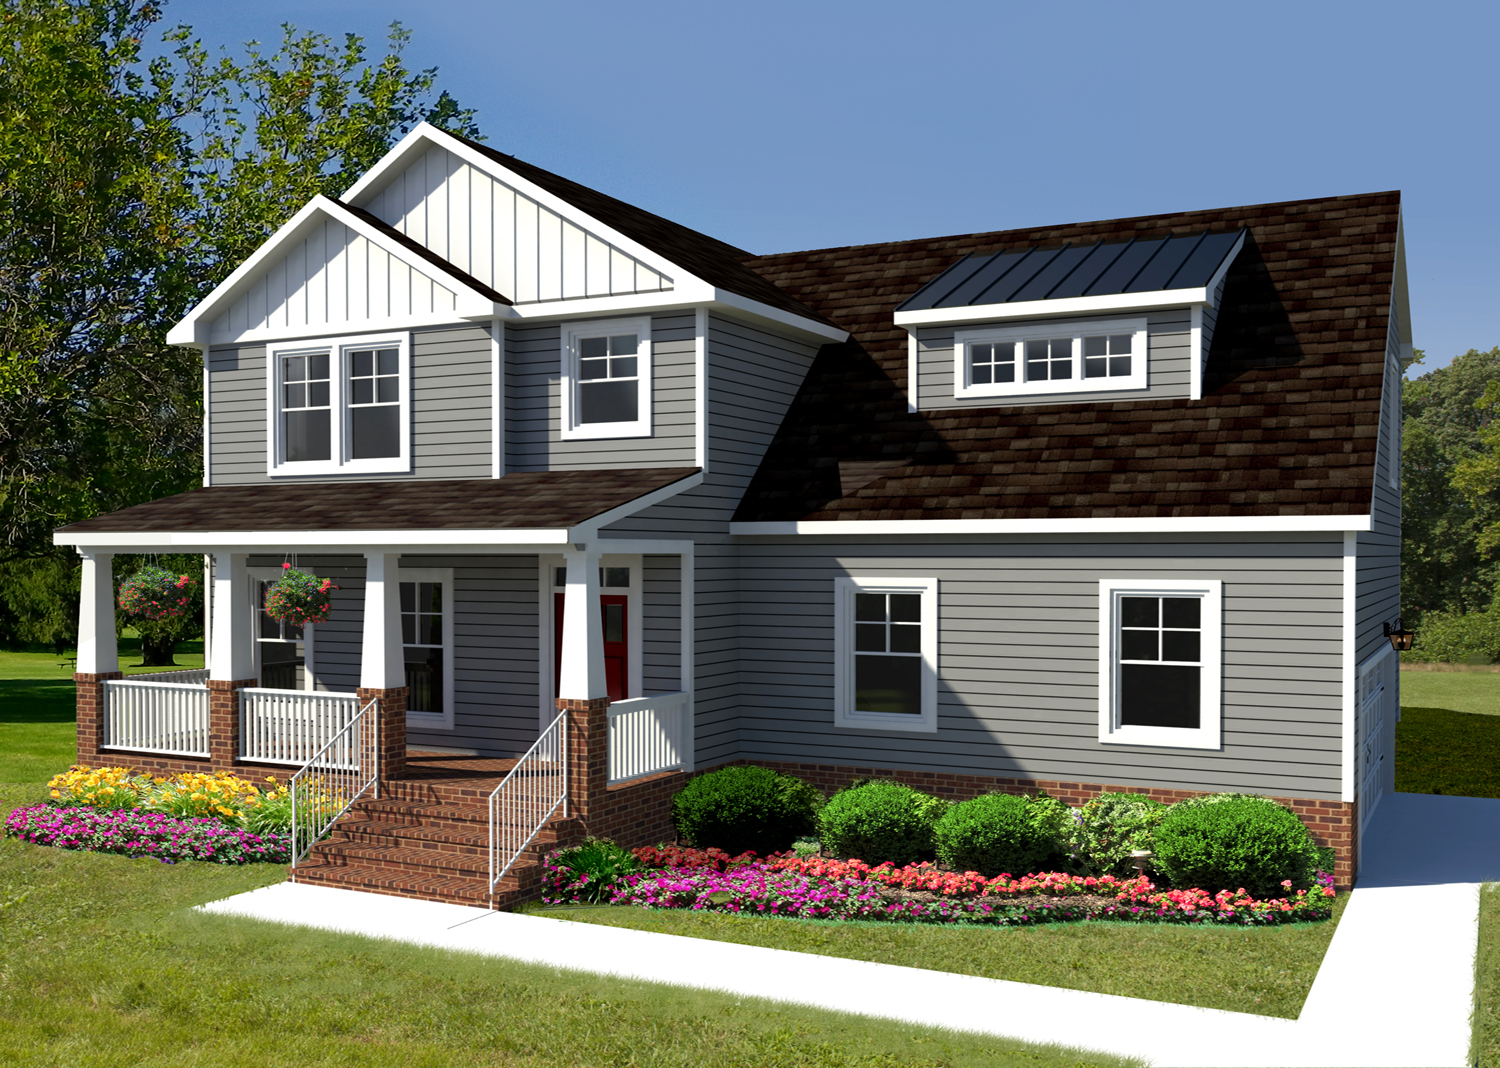 AB Homes' The Carter floor plan rendering in gray with grass